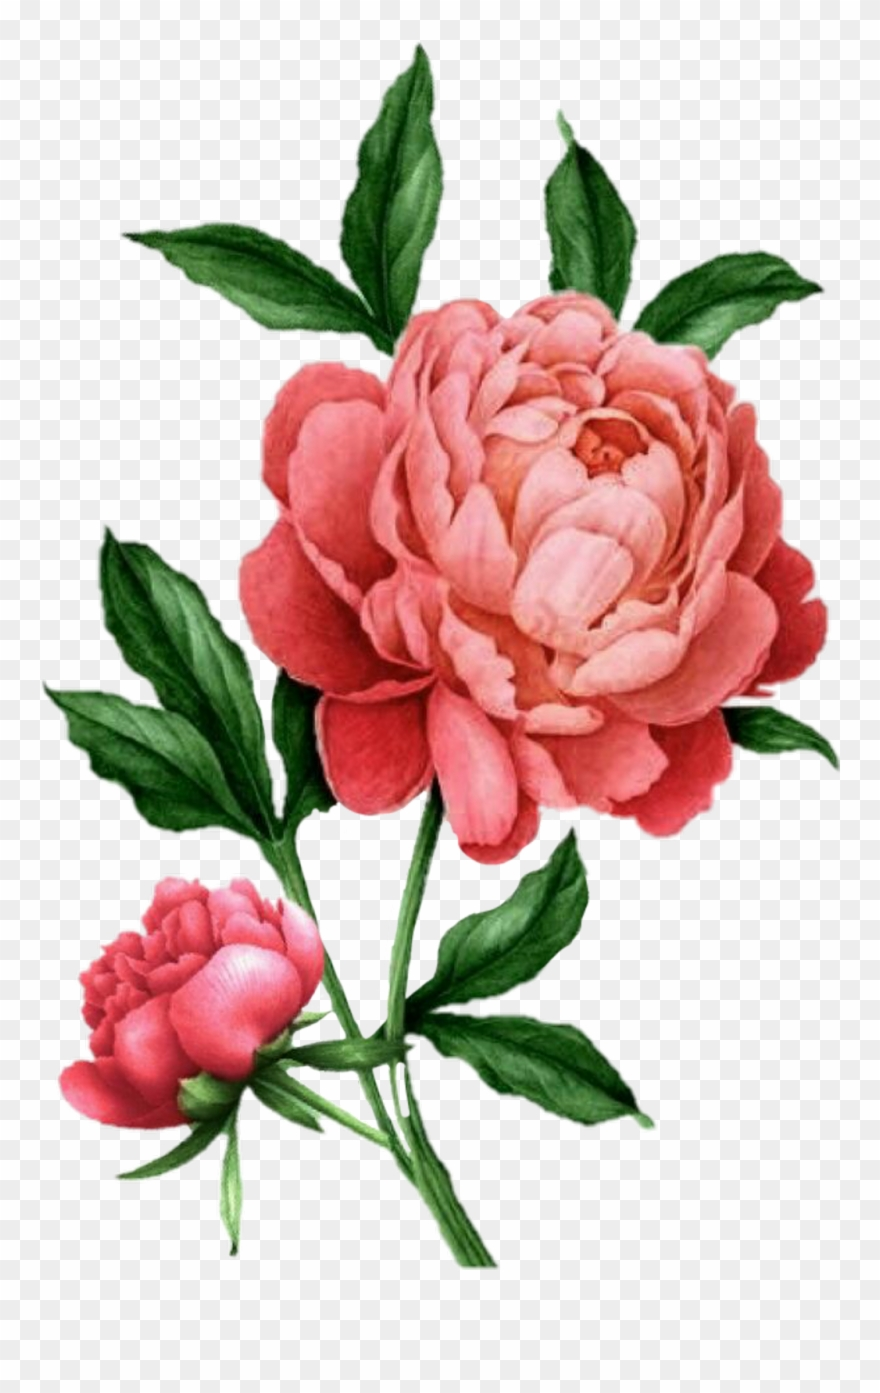 Flower Sticker Botanical Illustration Peony Drawing Clipart 3185450 Pinclipart